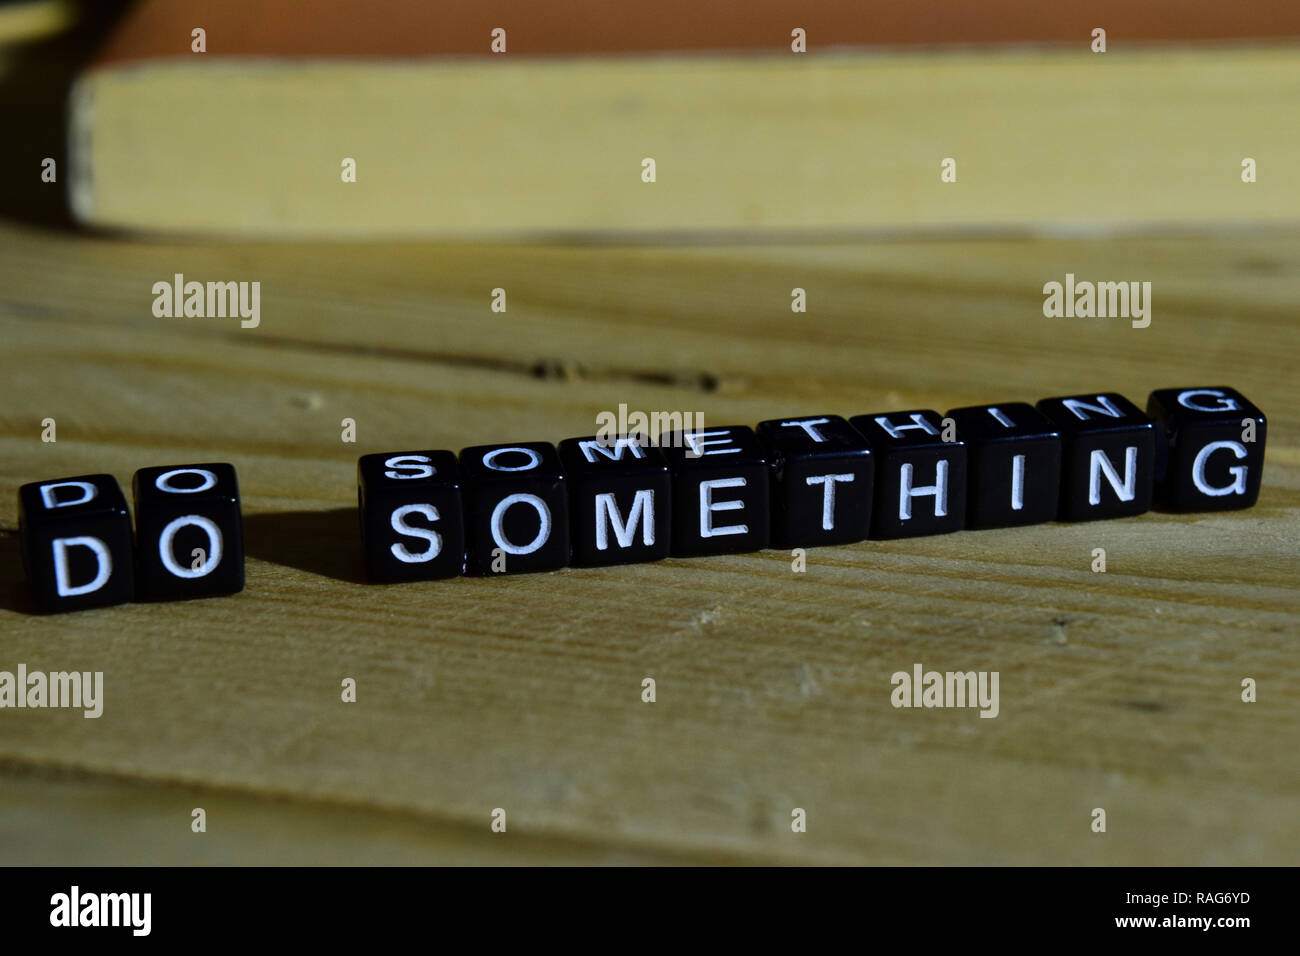 Do something on wooden blocks. Motivation and inspiration concept. Cross processed image - Stock Image